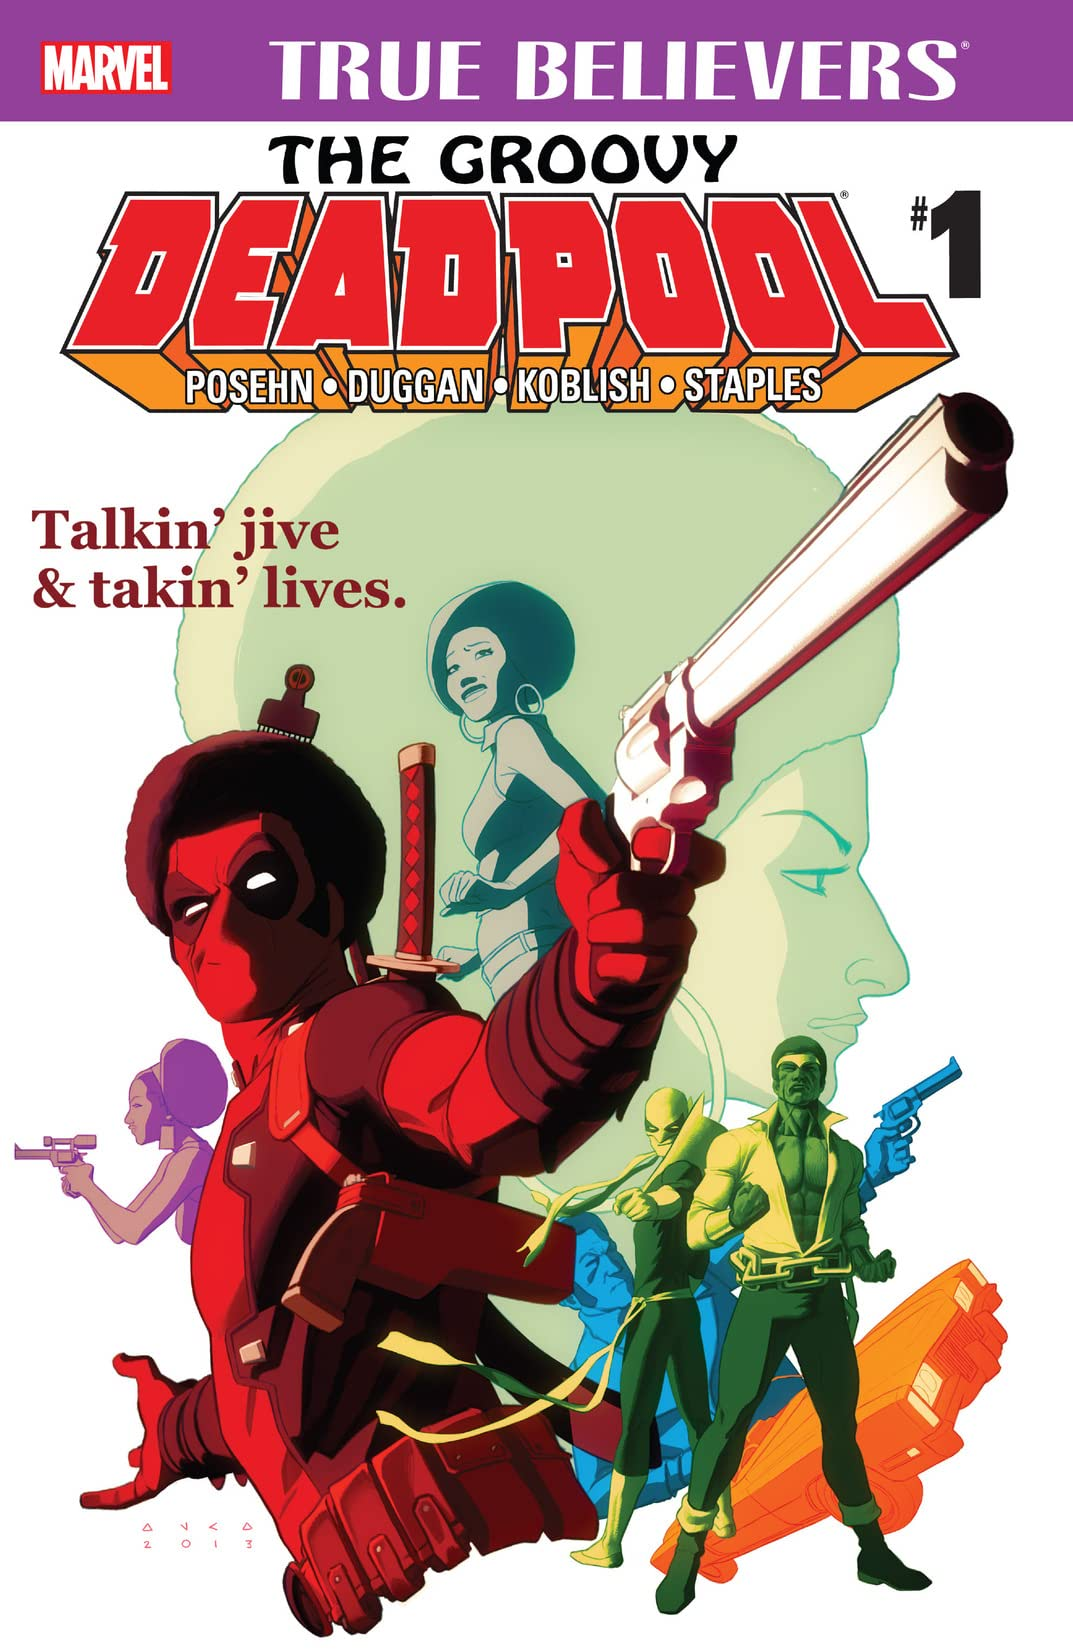 True Believers: The Groovy Deadpool #1